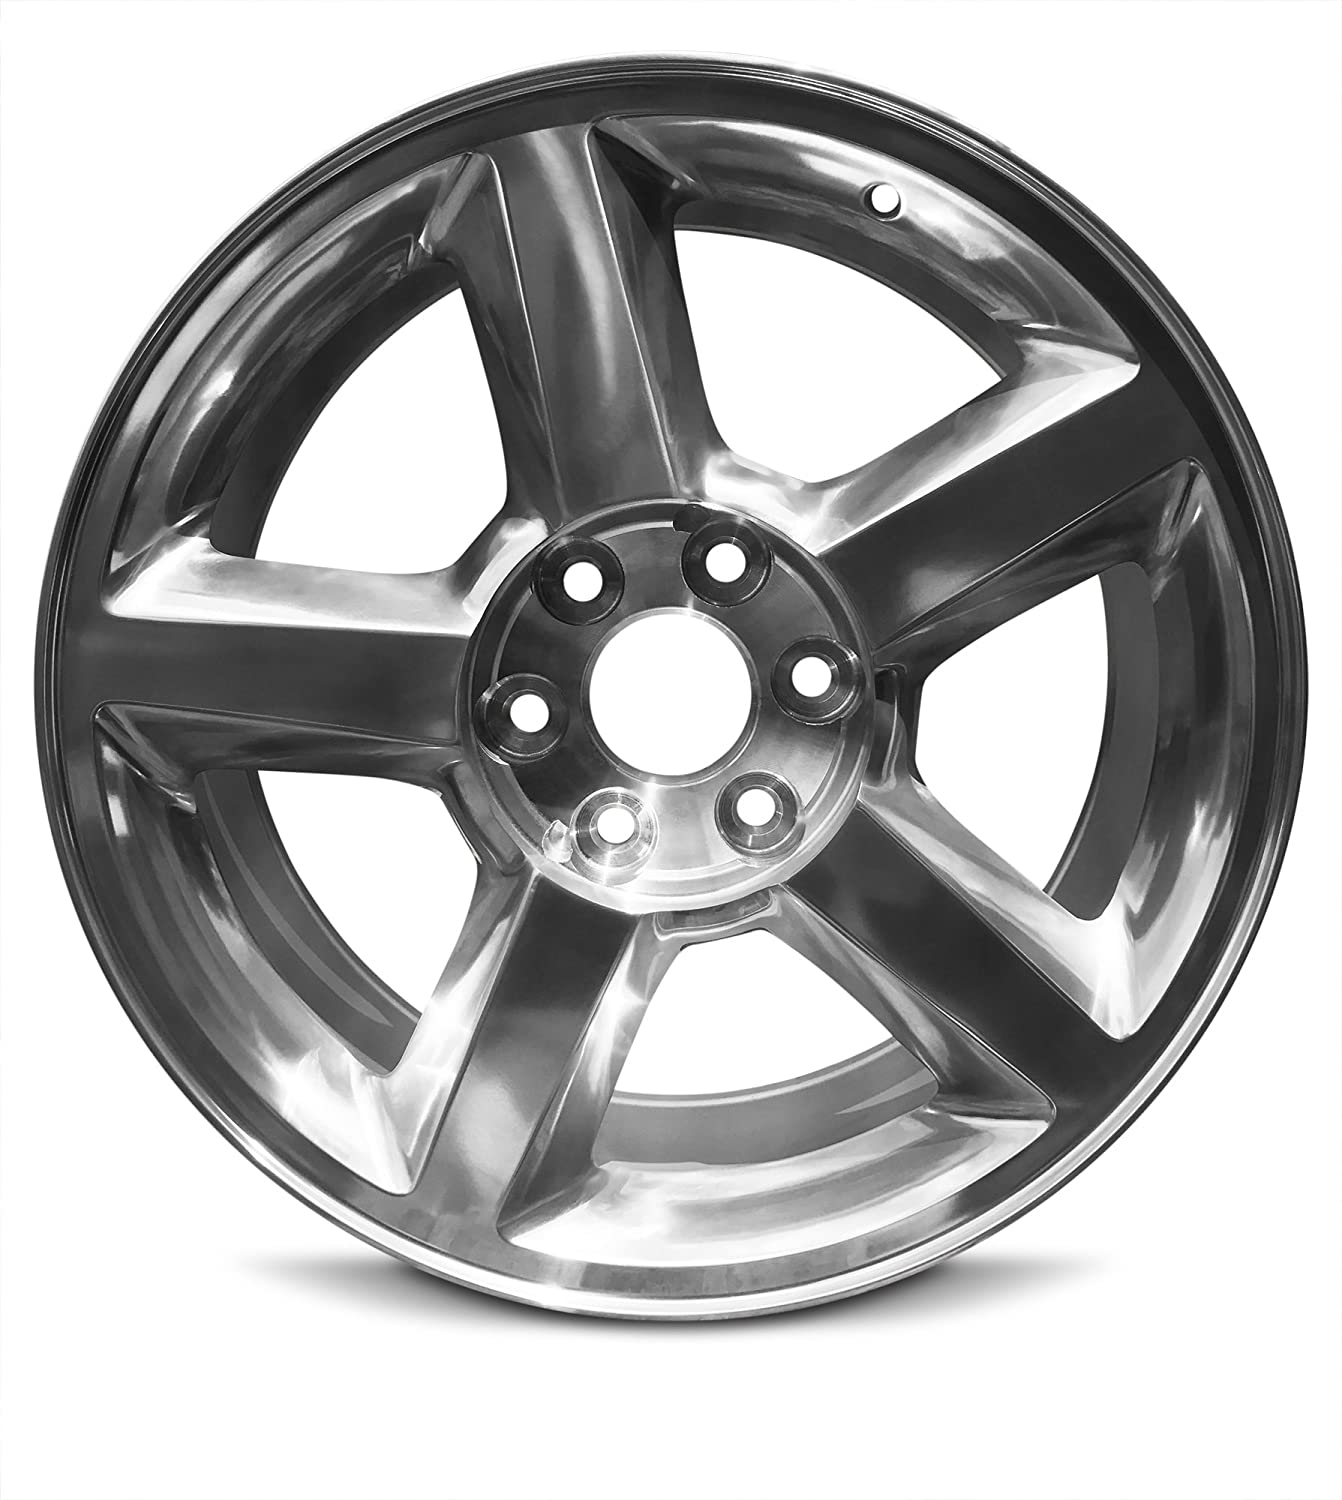 amazon new 20 x 8 5 inch 6 lug gm chevy avalanche 07 09 07 GMC Extended Cab amazon new 20 x 8 5 inch 6 lug gm chevy avalanche 07 09 silverado 1500 07 09 suburban 07 09 tahoe 07 09 aluminum full size replica wheel rim